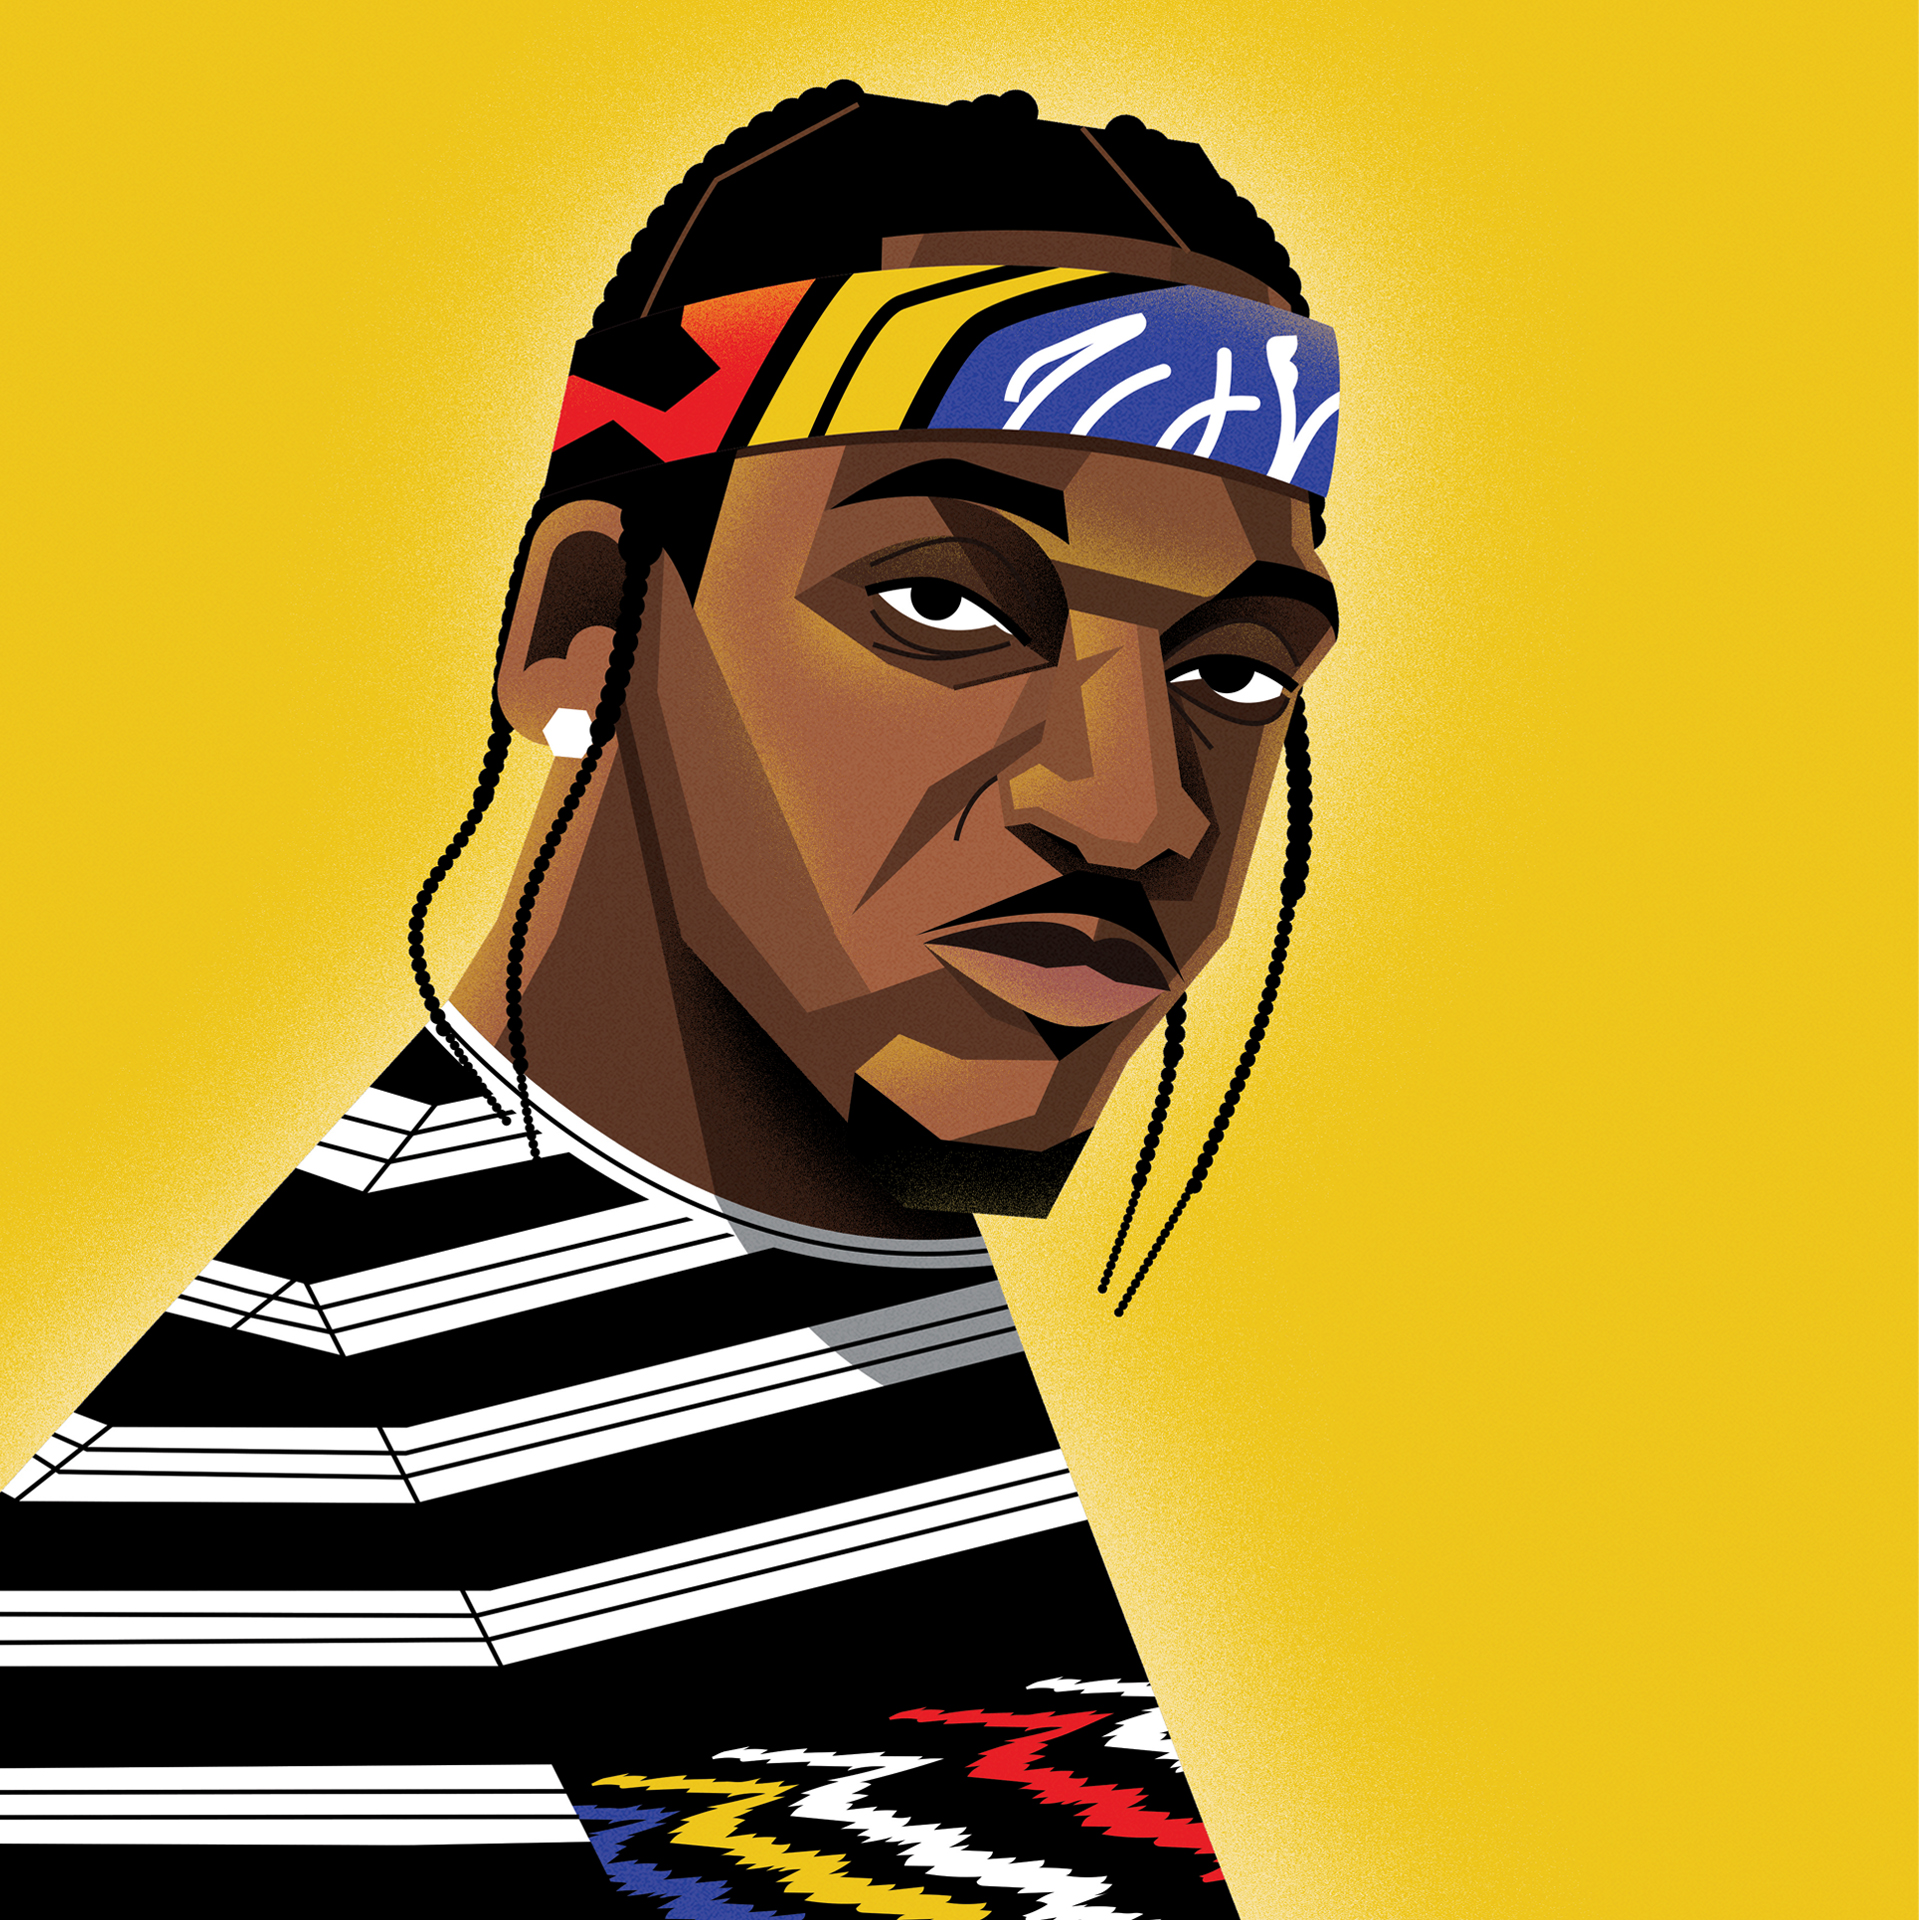 dale edwin murray freelance illustrator complex pusha t hip hop  illustration